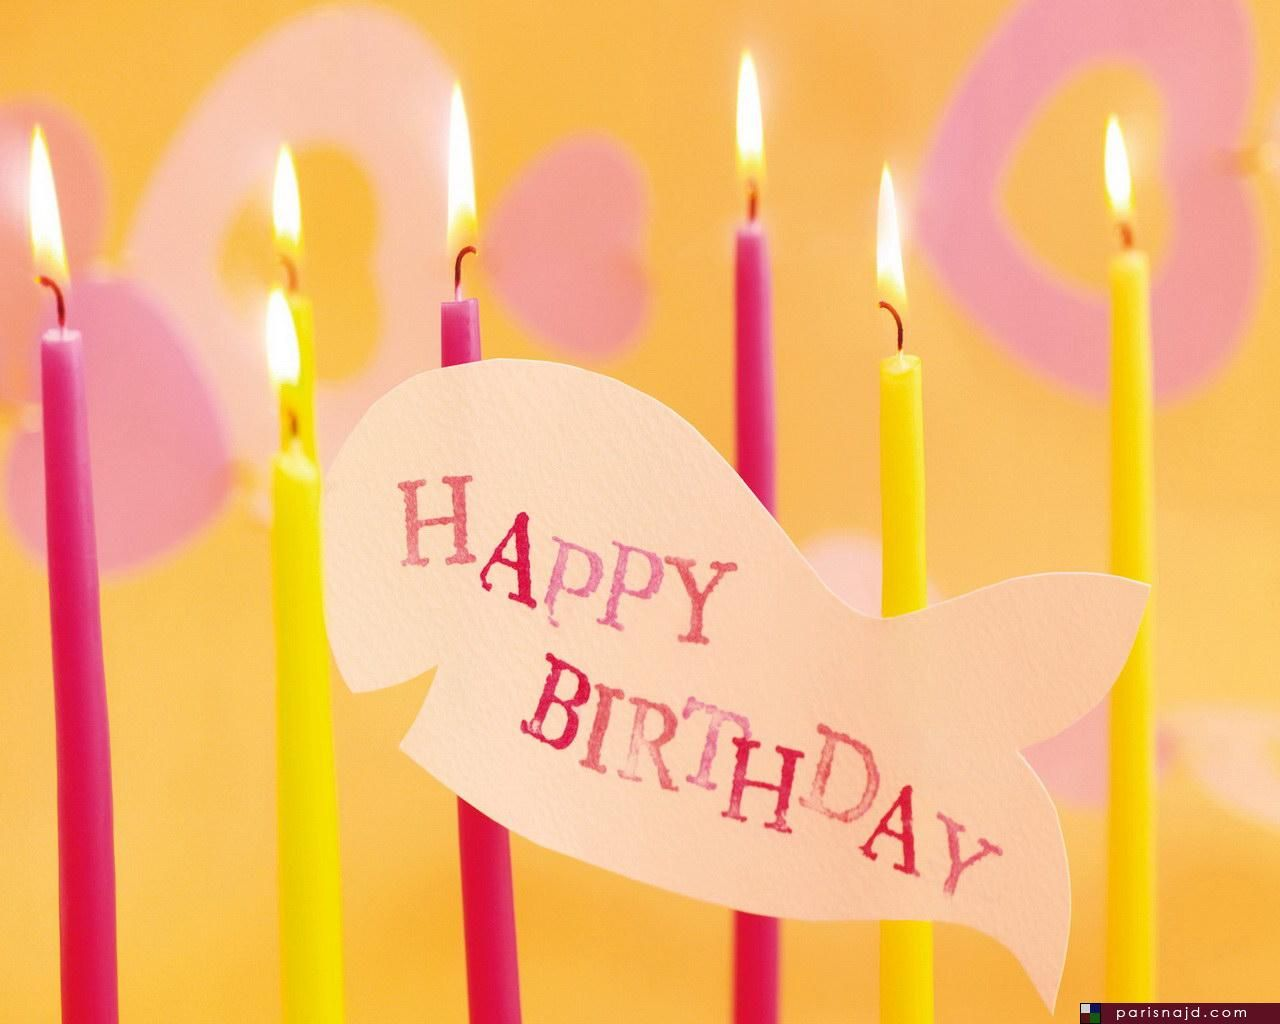 It S My Birthday Happy Birthday Hd Happy Birthday Candles Happy Birthday Images